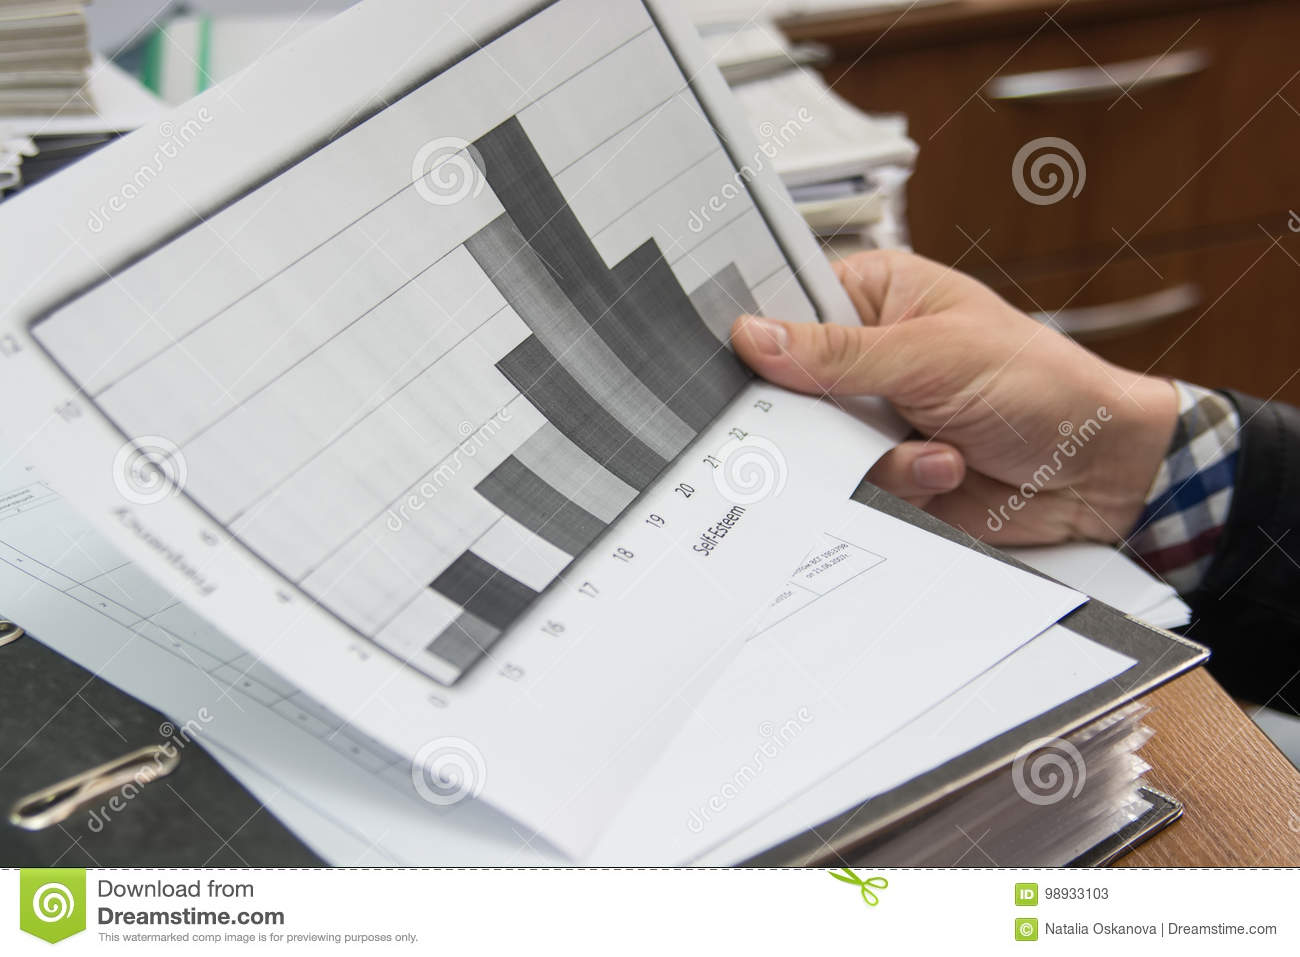 Business analyst examining diagram